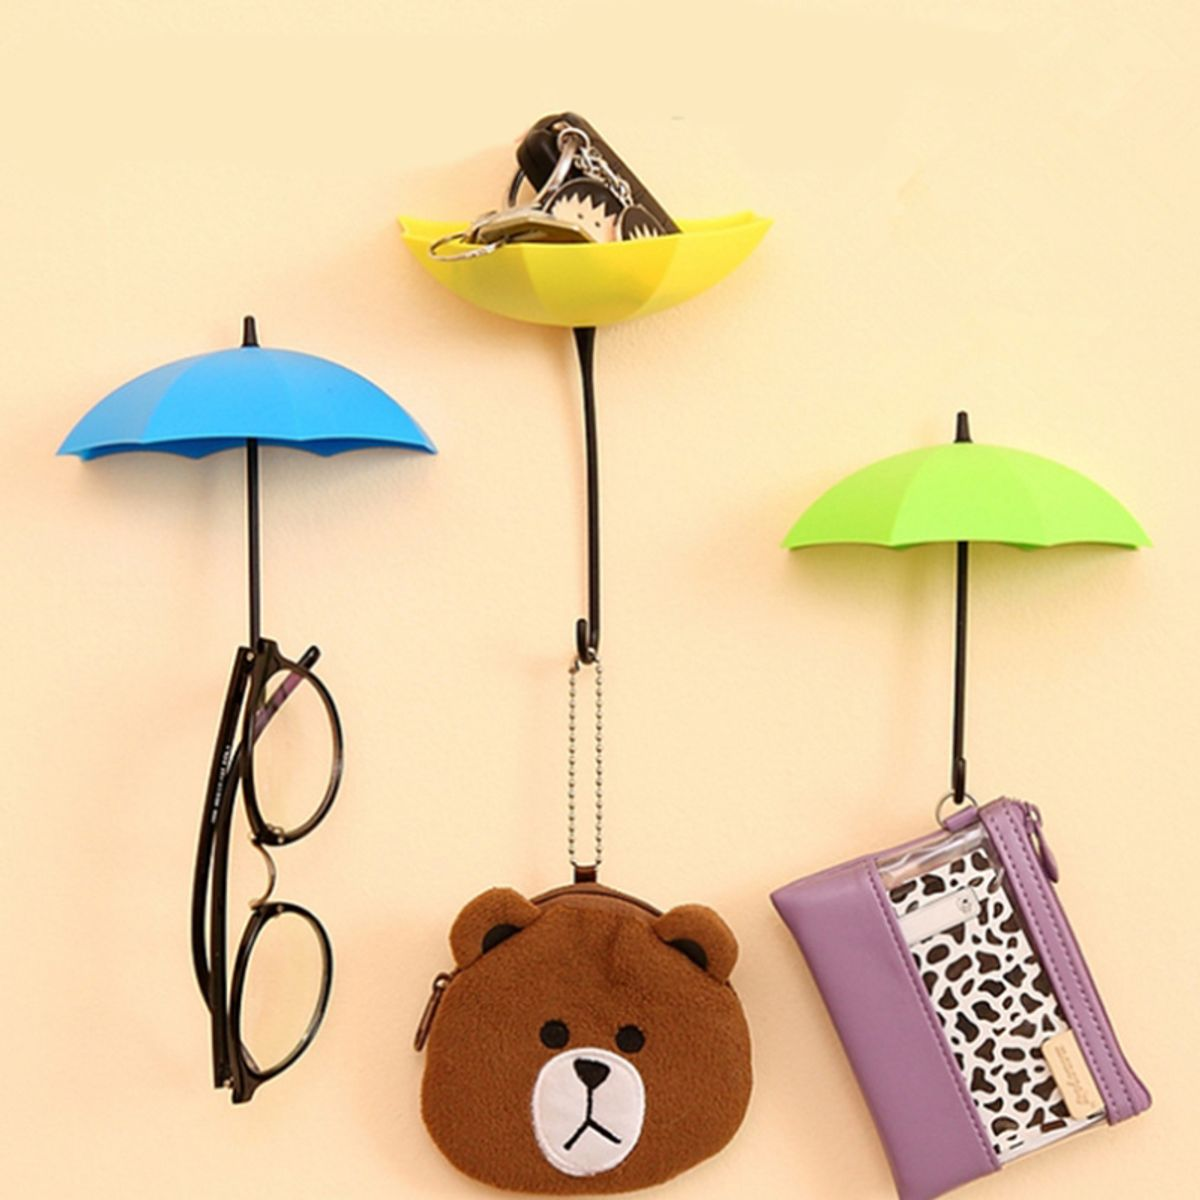 Awesome Umbrella Wall Decor Gallery - The Wall Art Decorations ...